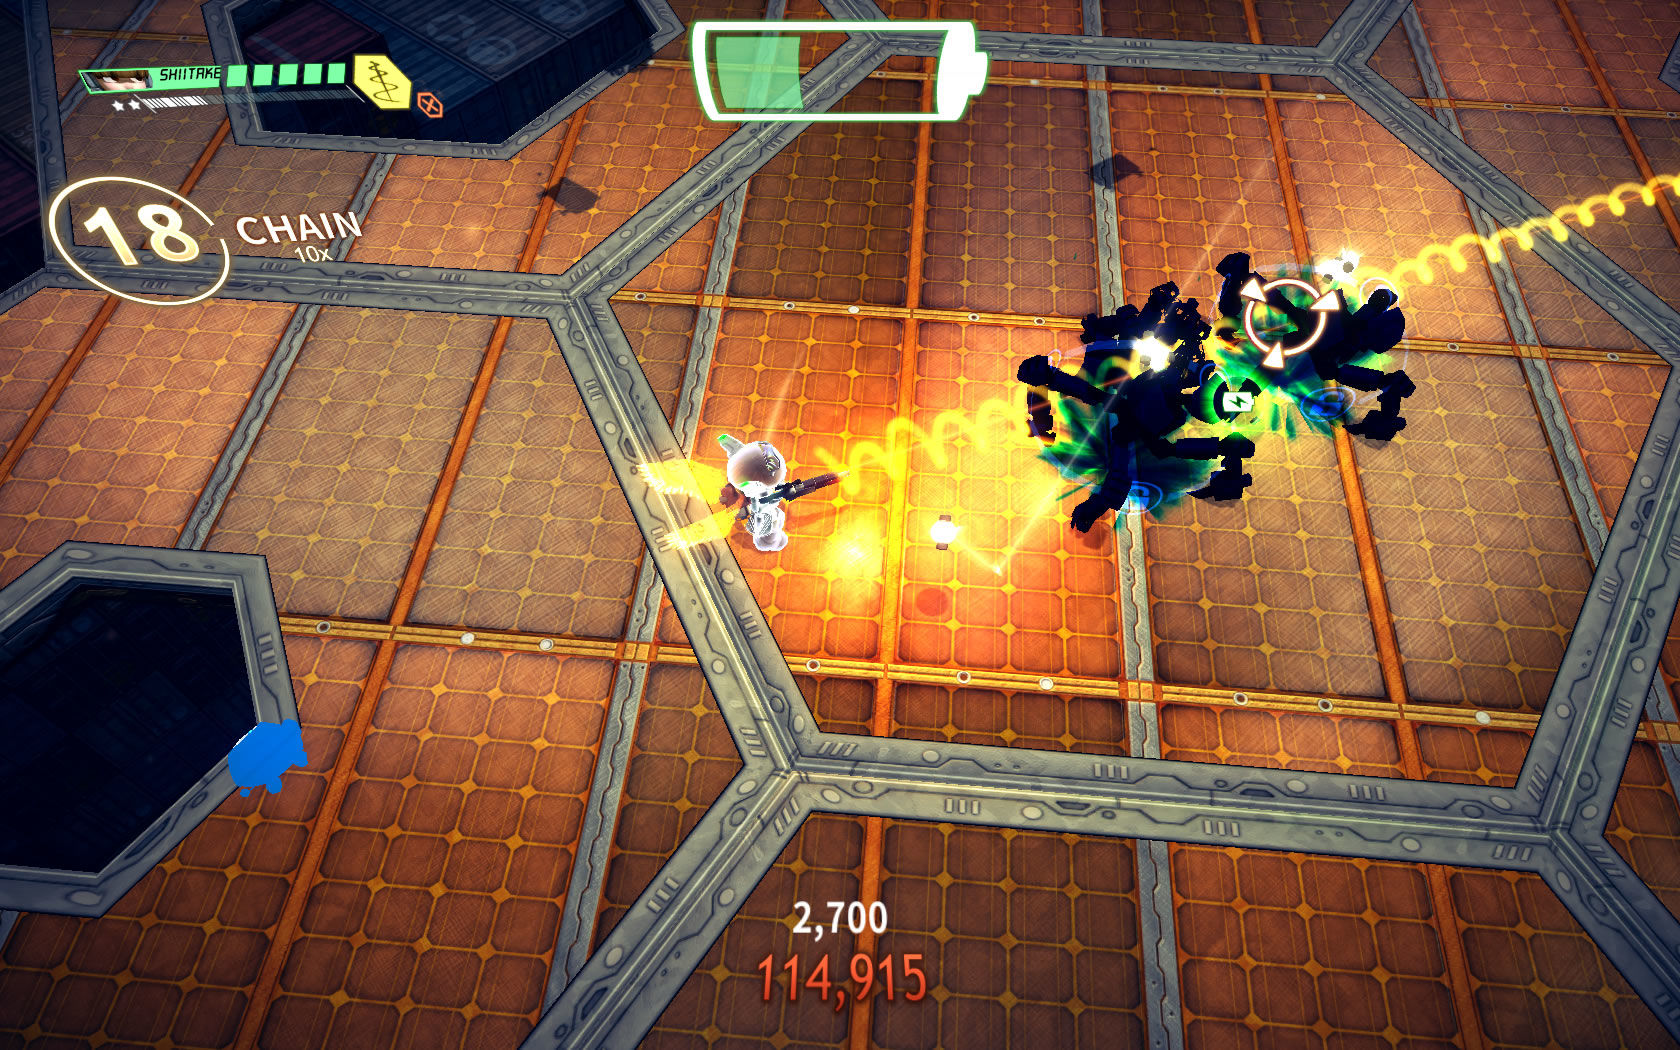 Assault Android Cactus Windows Shiitake fights with a rail gun. These enemies have dropped a battery charge.